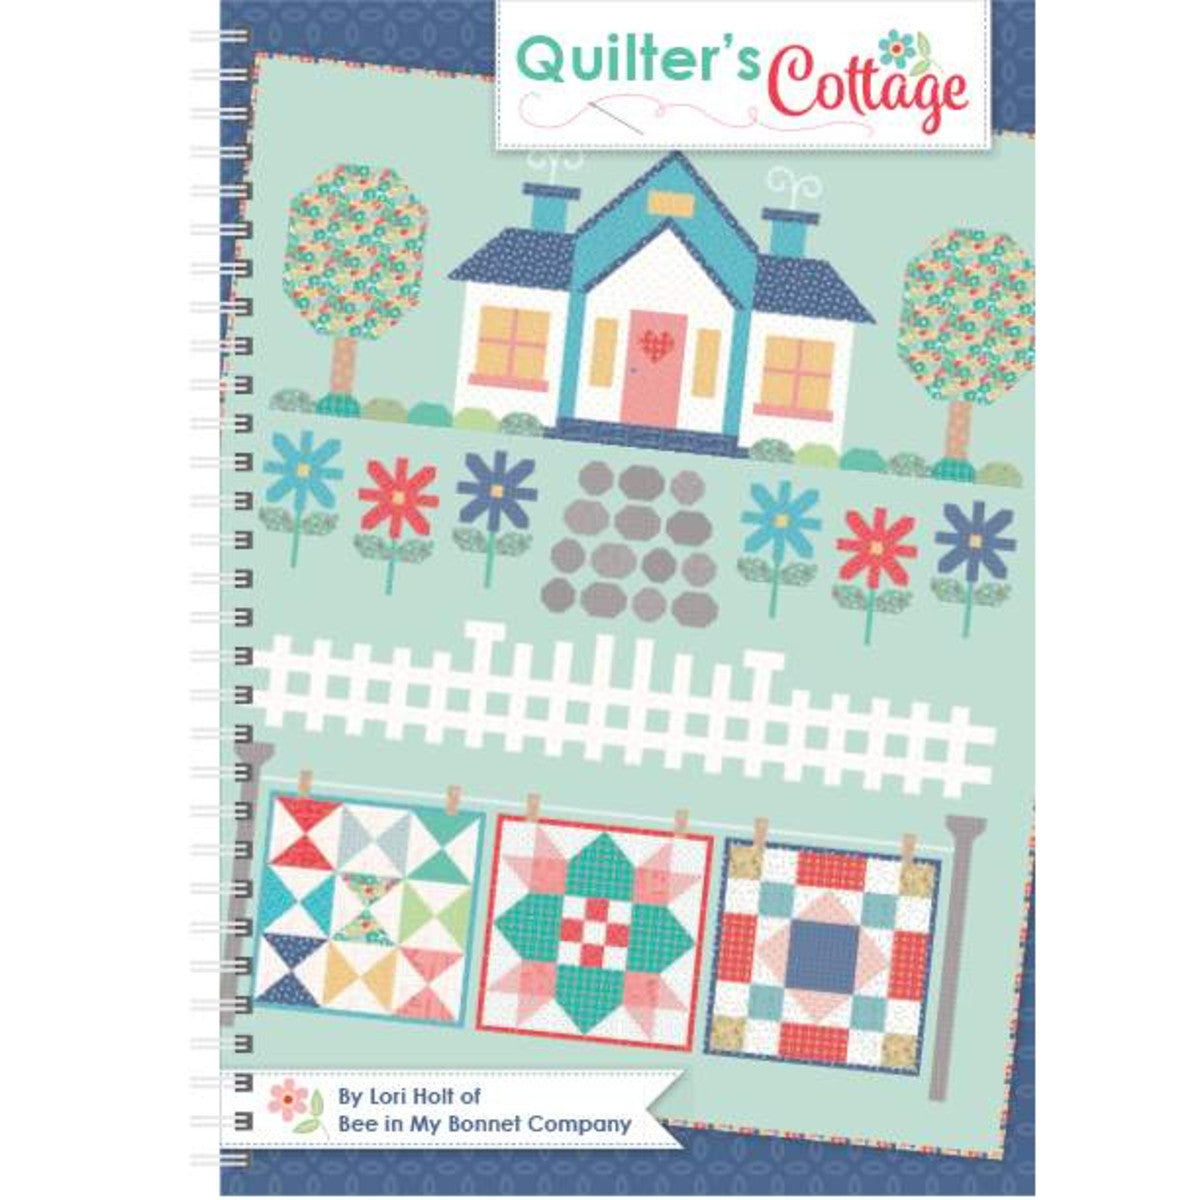 Quilter's Cottage by Lori Holt of Bee in my Bonnet for It's Sew Emma